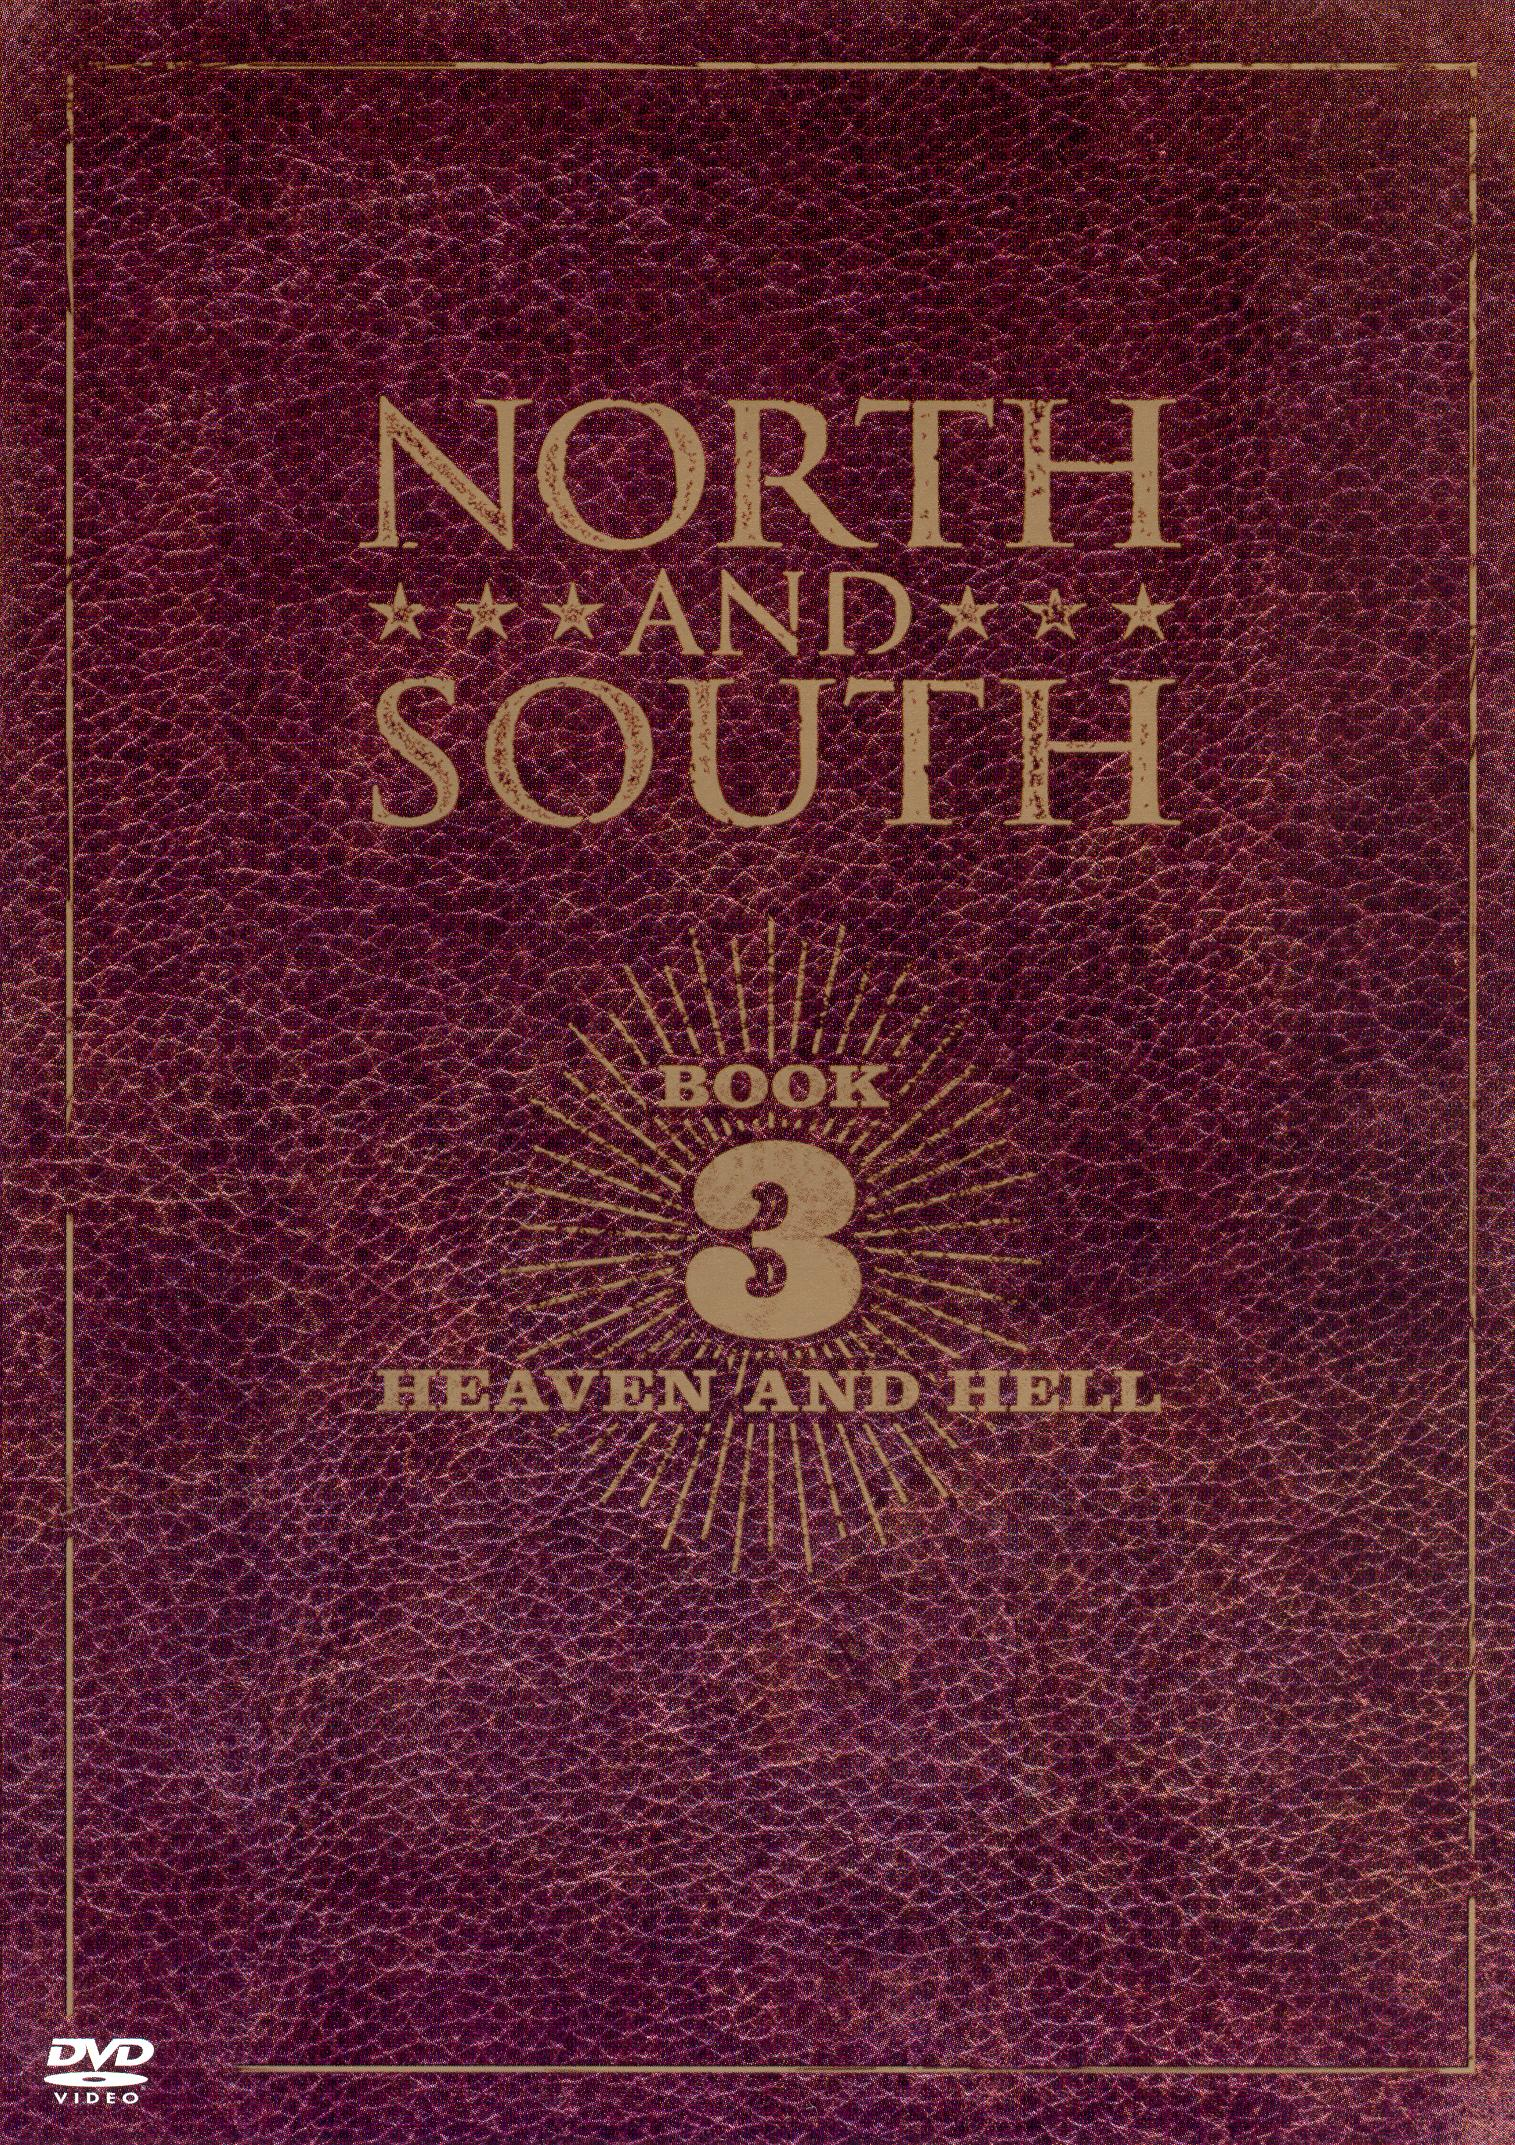 Heaven and Hell: North and South, Book III